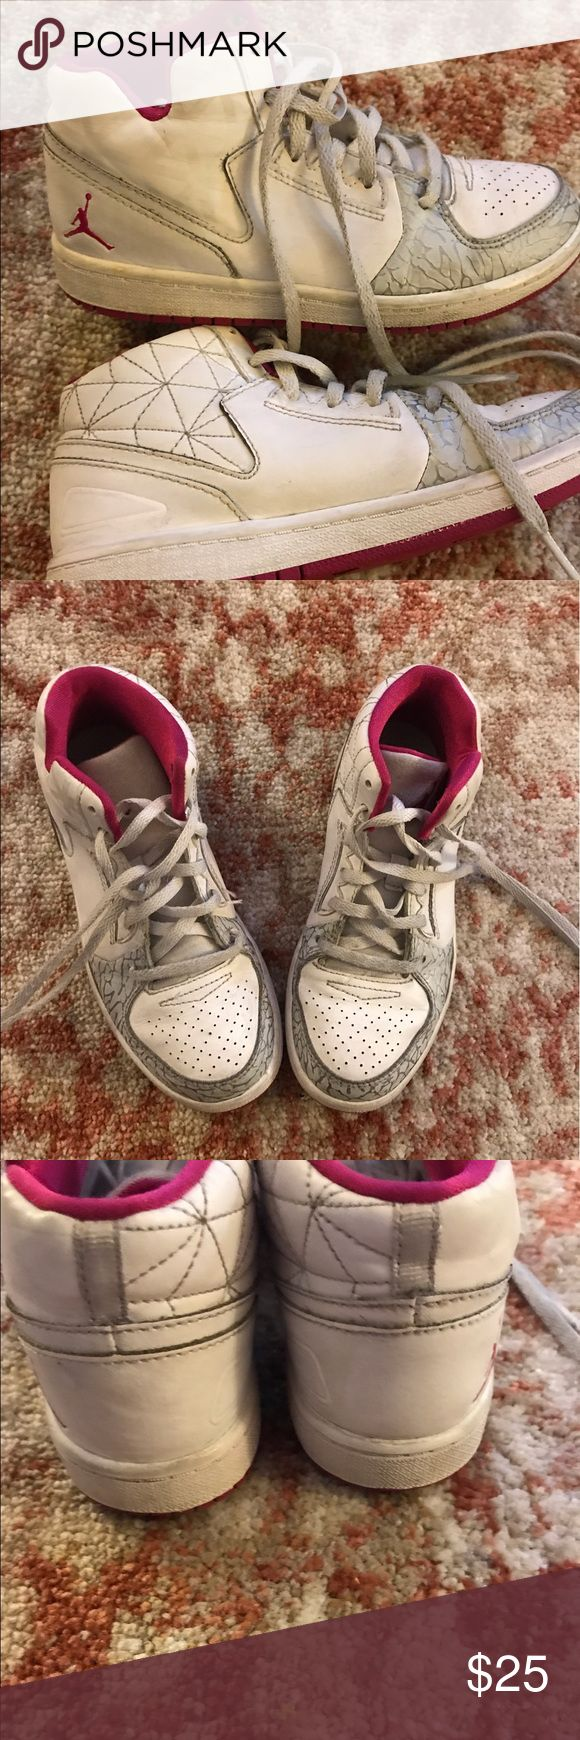 Girls Jordan sneaker Pre love ❤️ sneakers. In good condition. Jordan Shoes Sneakers